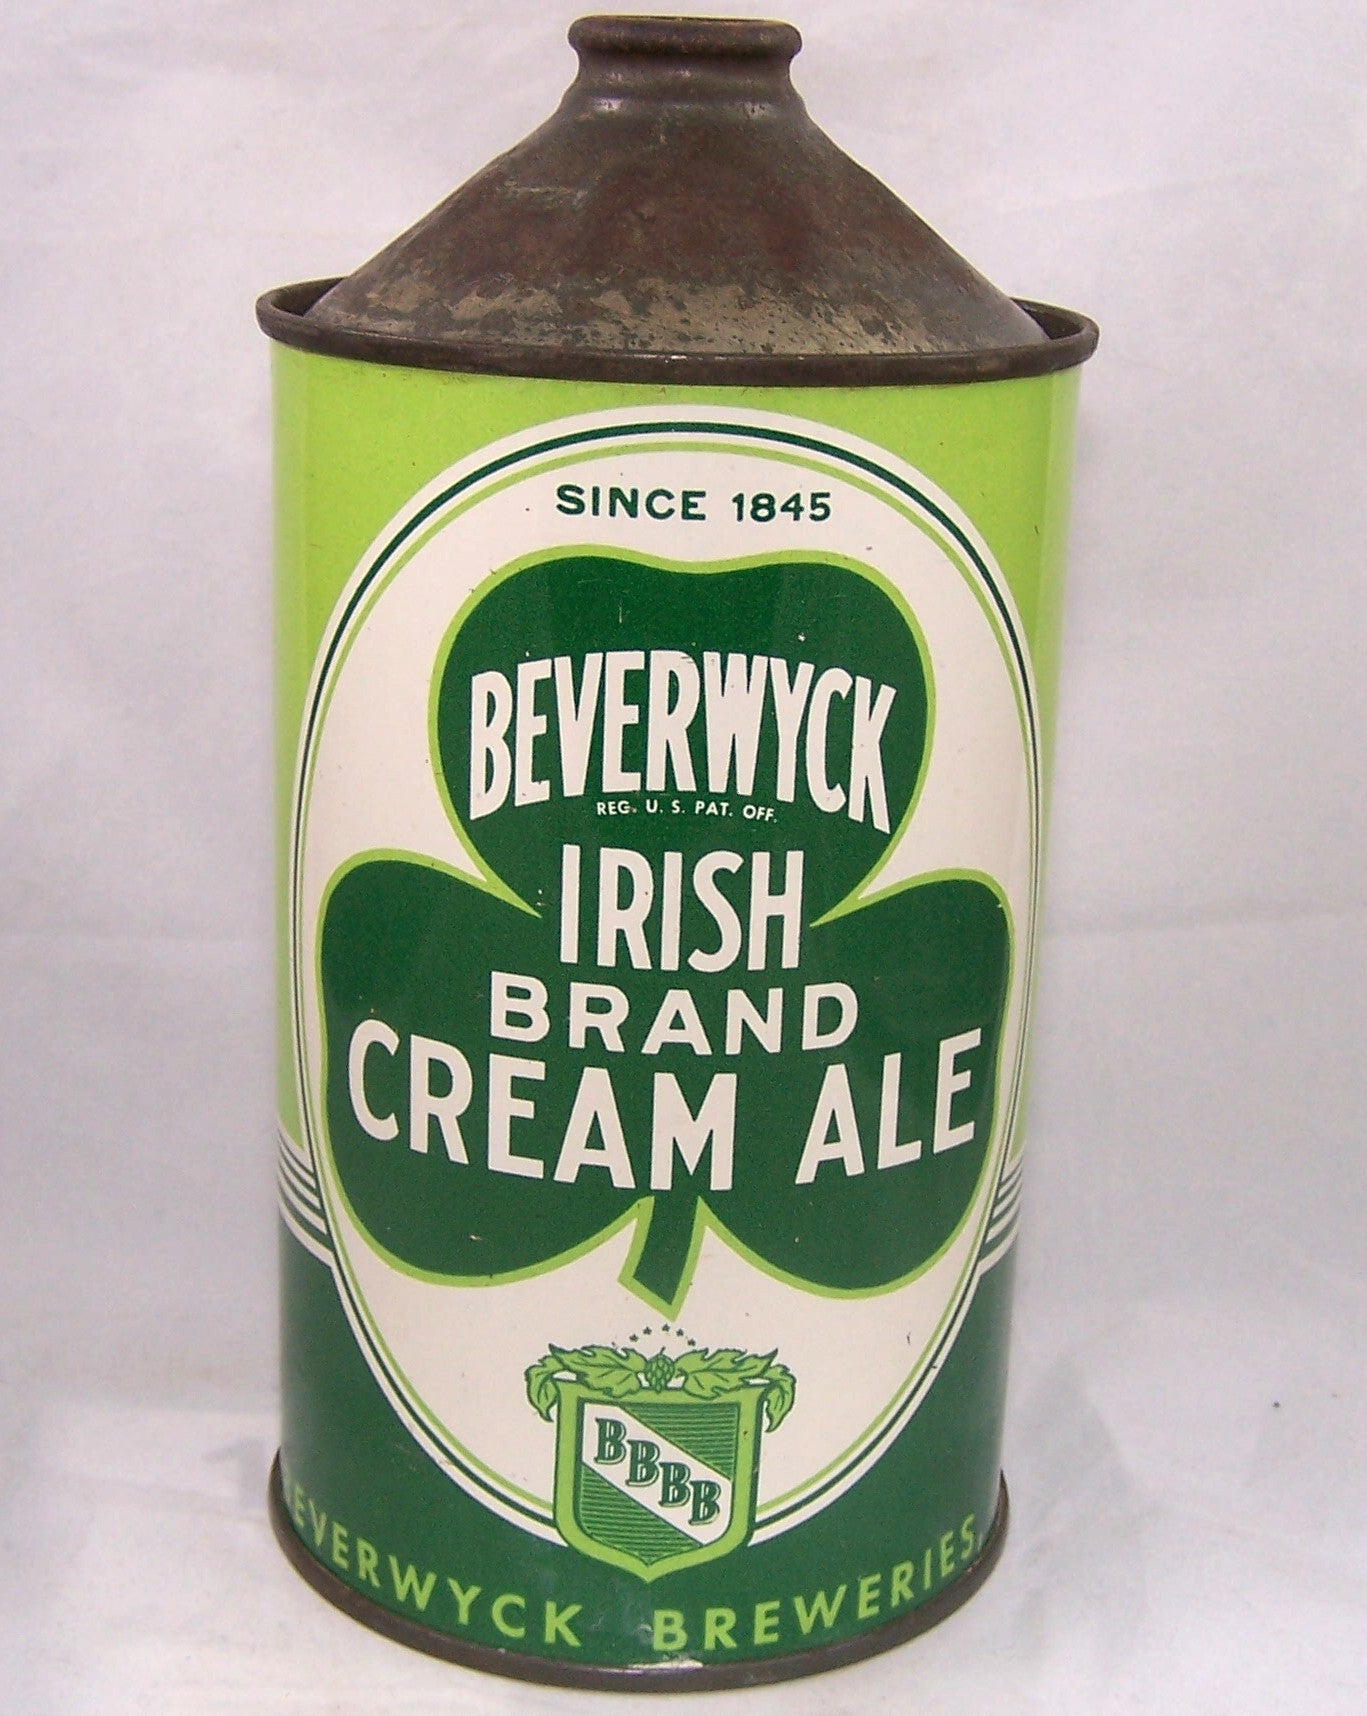 Beverwyck Irish Brand Cream Ale, USBC 203-04 Grade 1 to 1/1+ Sold on 12/29/16